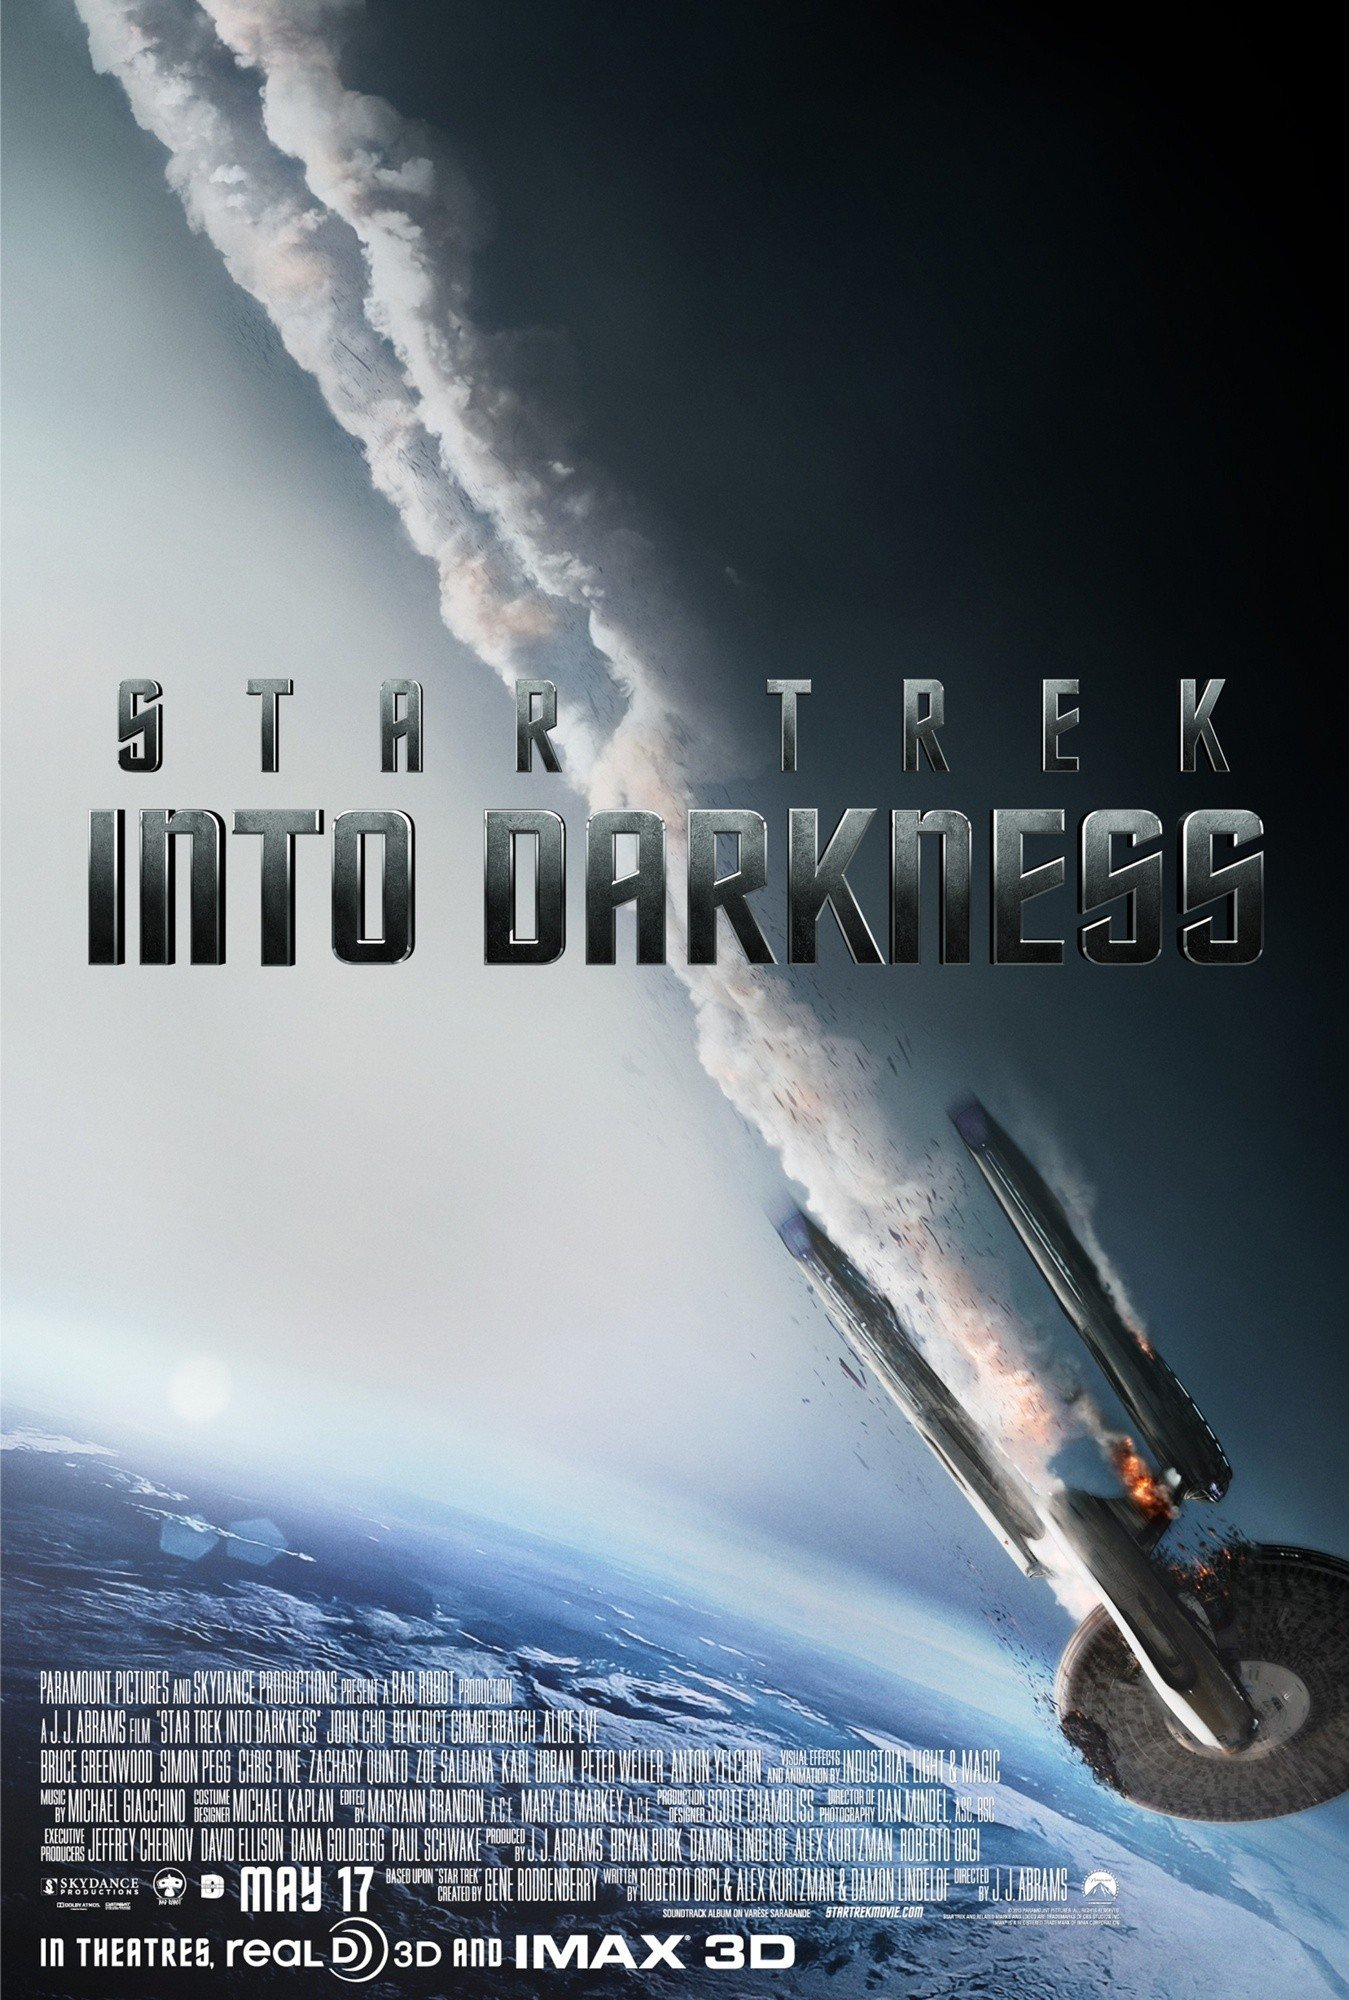 https://i0.wp.com/www.aceshowbiz.com/images/still/star-trek-into-darkness-pstr04.jpg